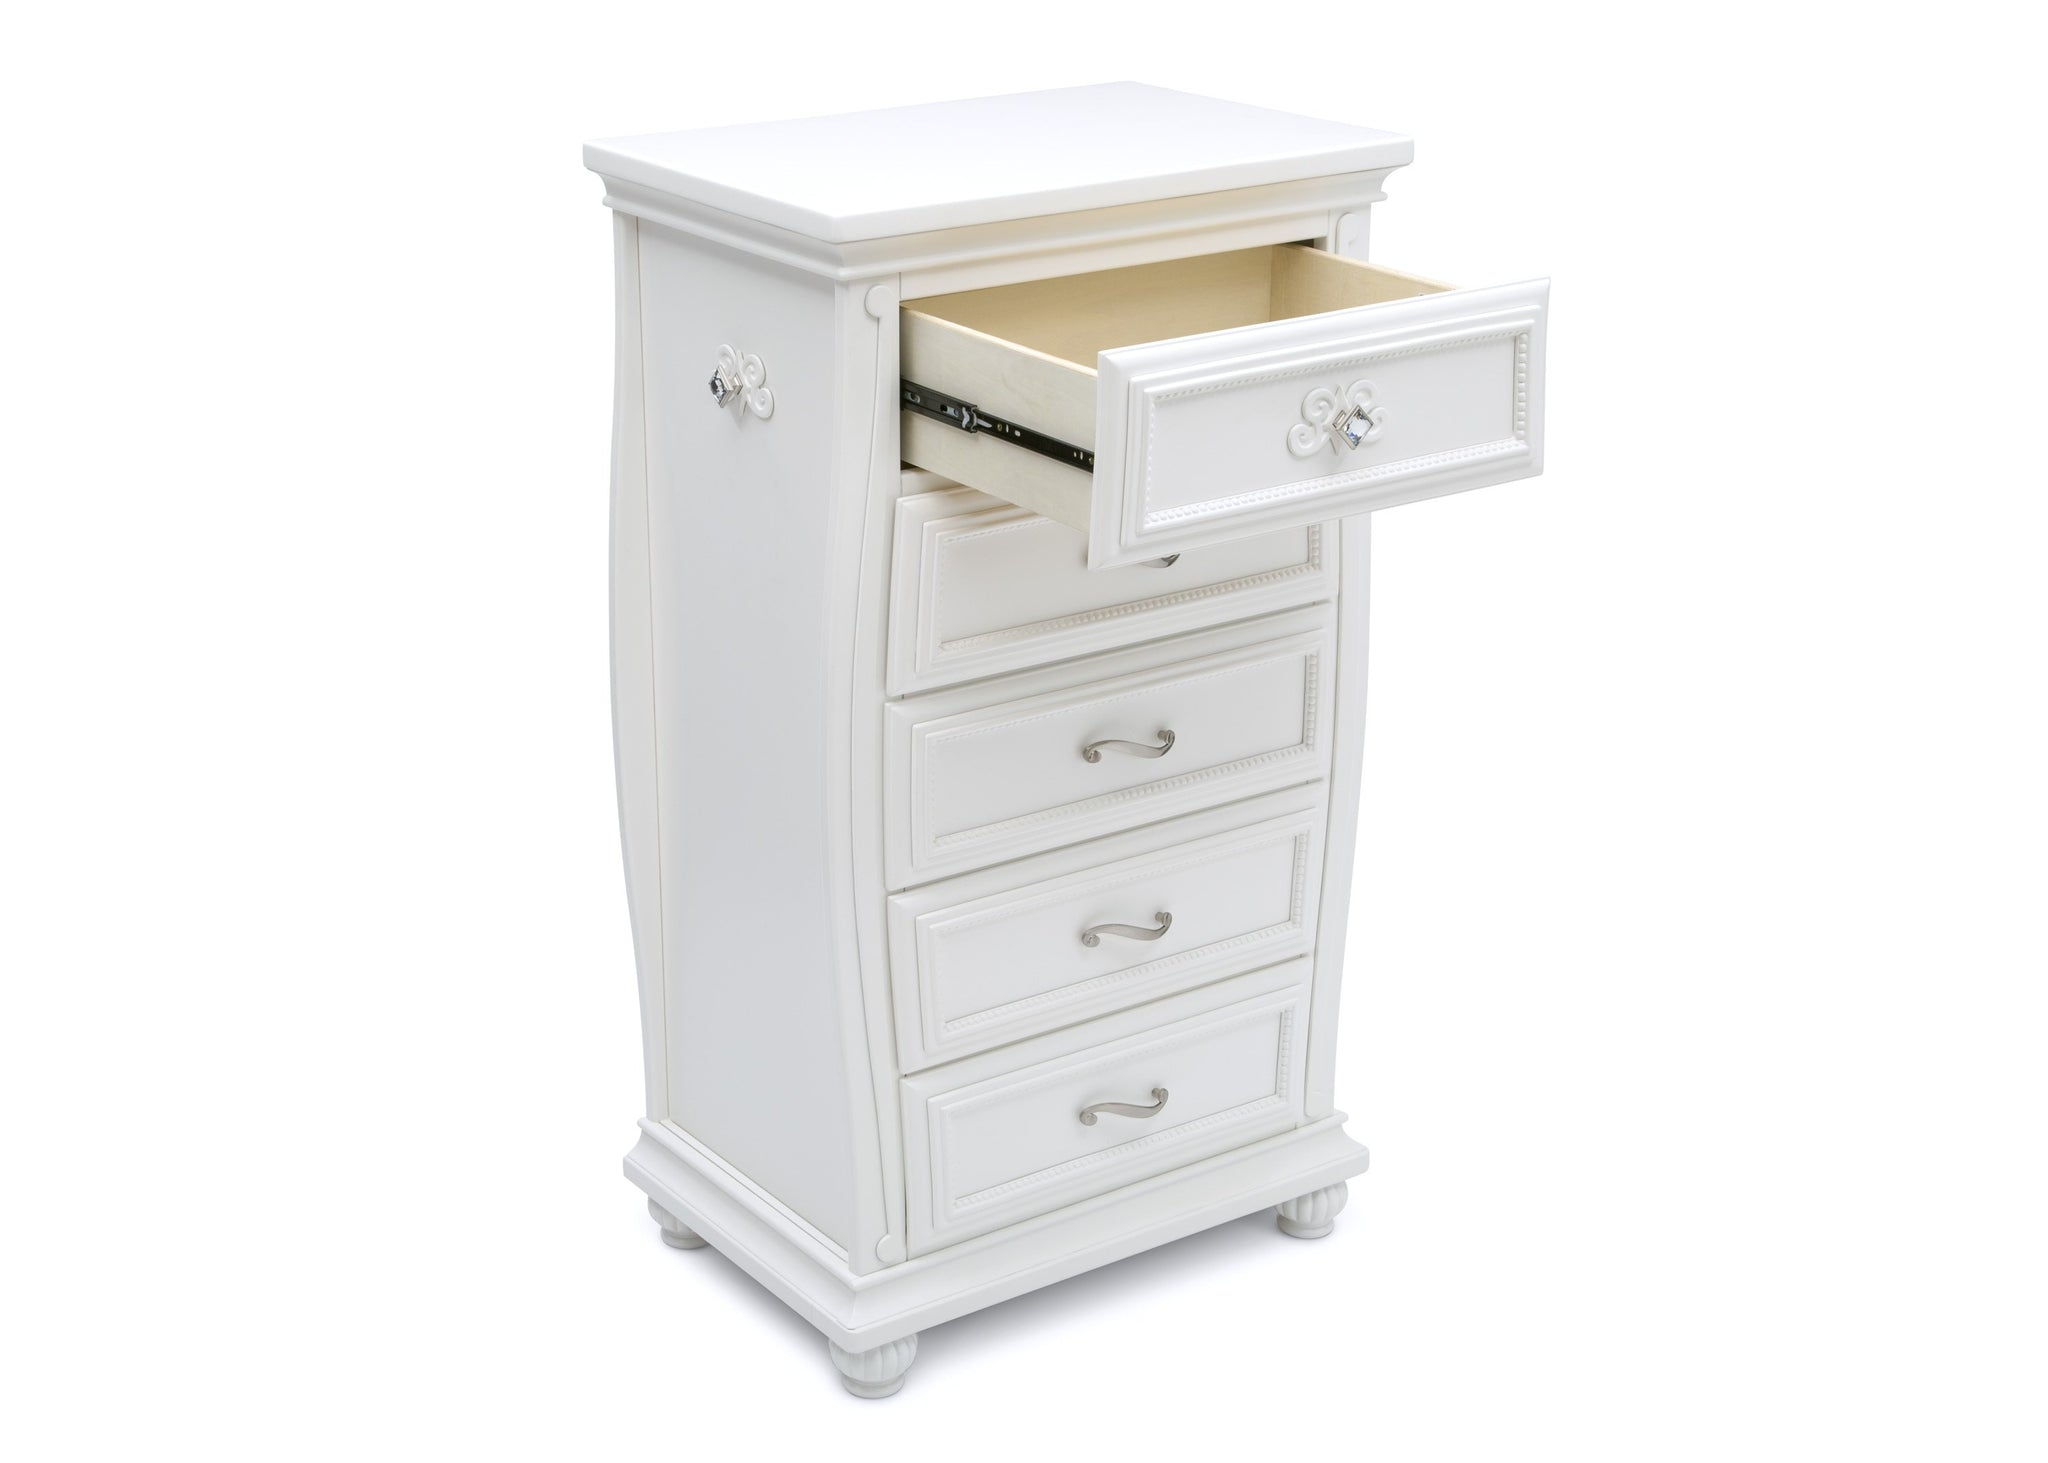 Simmons Kids Bianca White (130) Fairytale 5 Drawer Chest, Right Silo View with Open Drawer